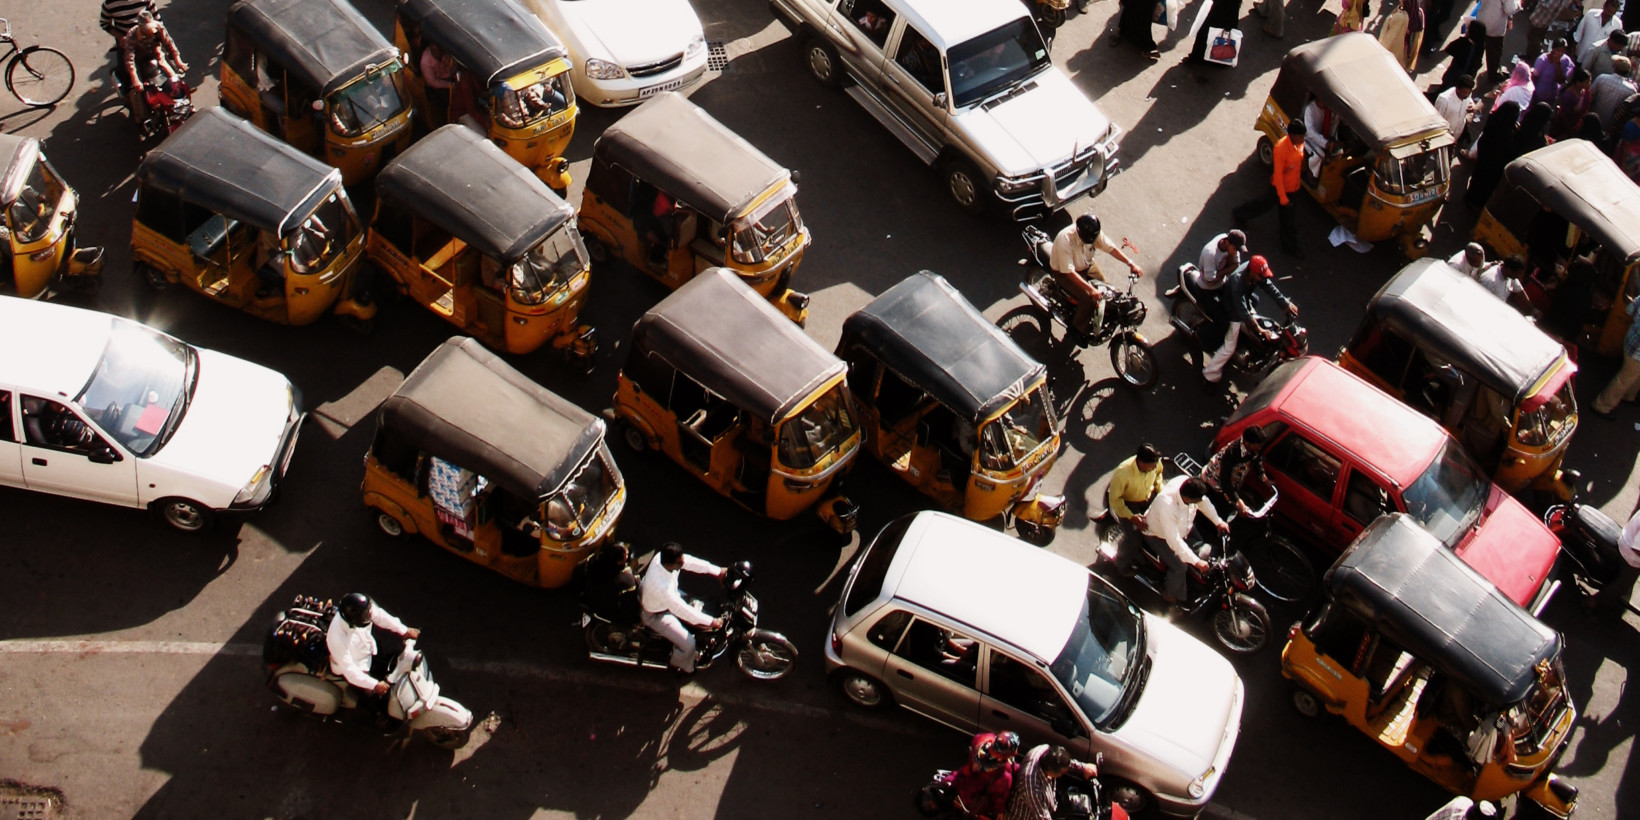 Why India is the perfect testing ground for self-driving cars